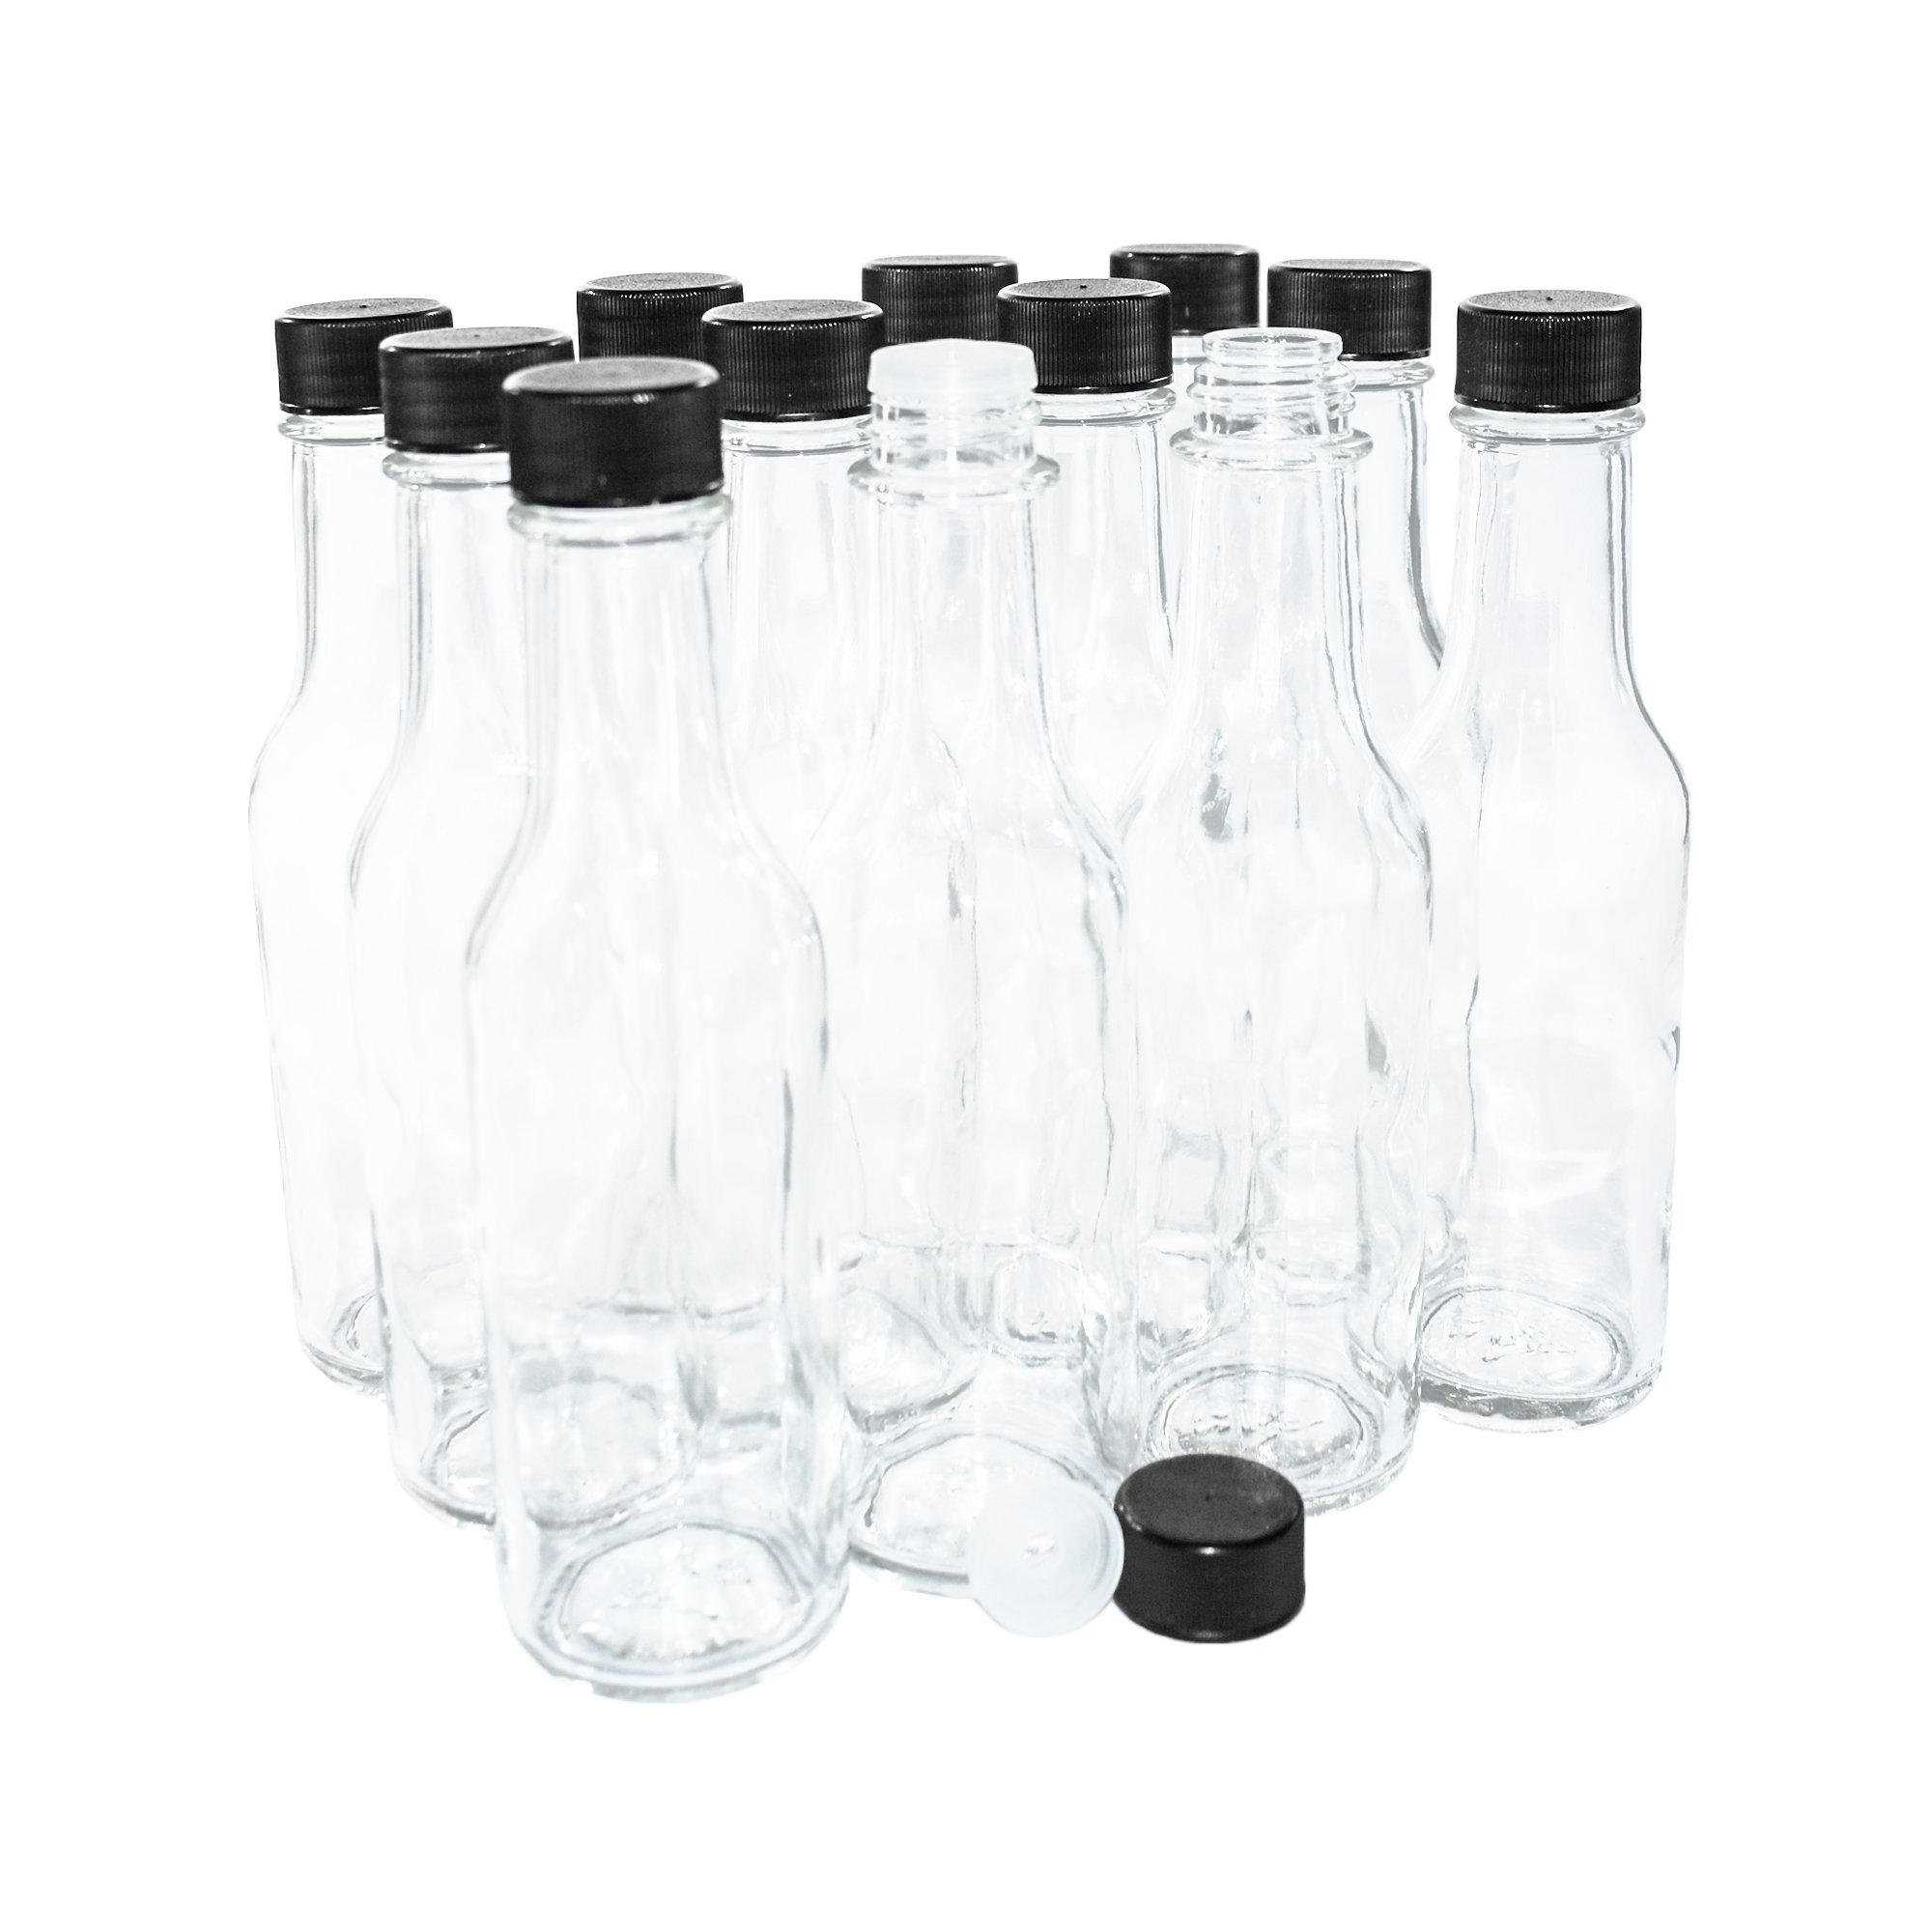 (12 pack) 5 oz. Clear Glass Hot Sauce Bottle with Black Cap and Orifice Reducer